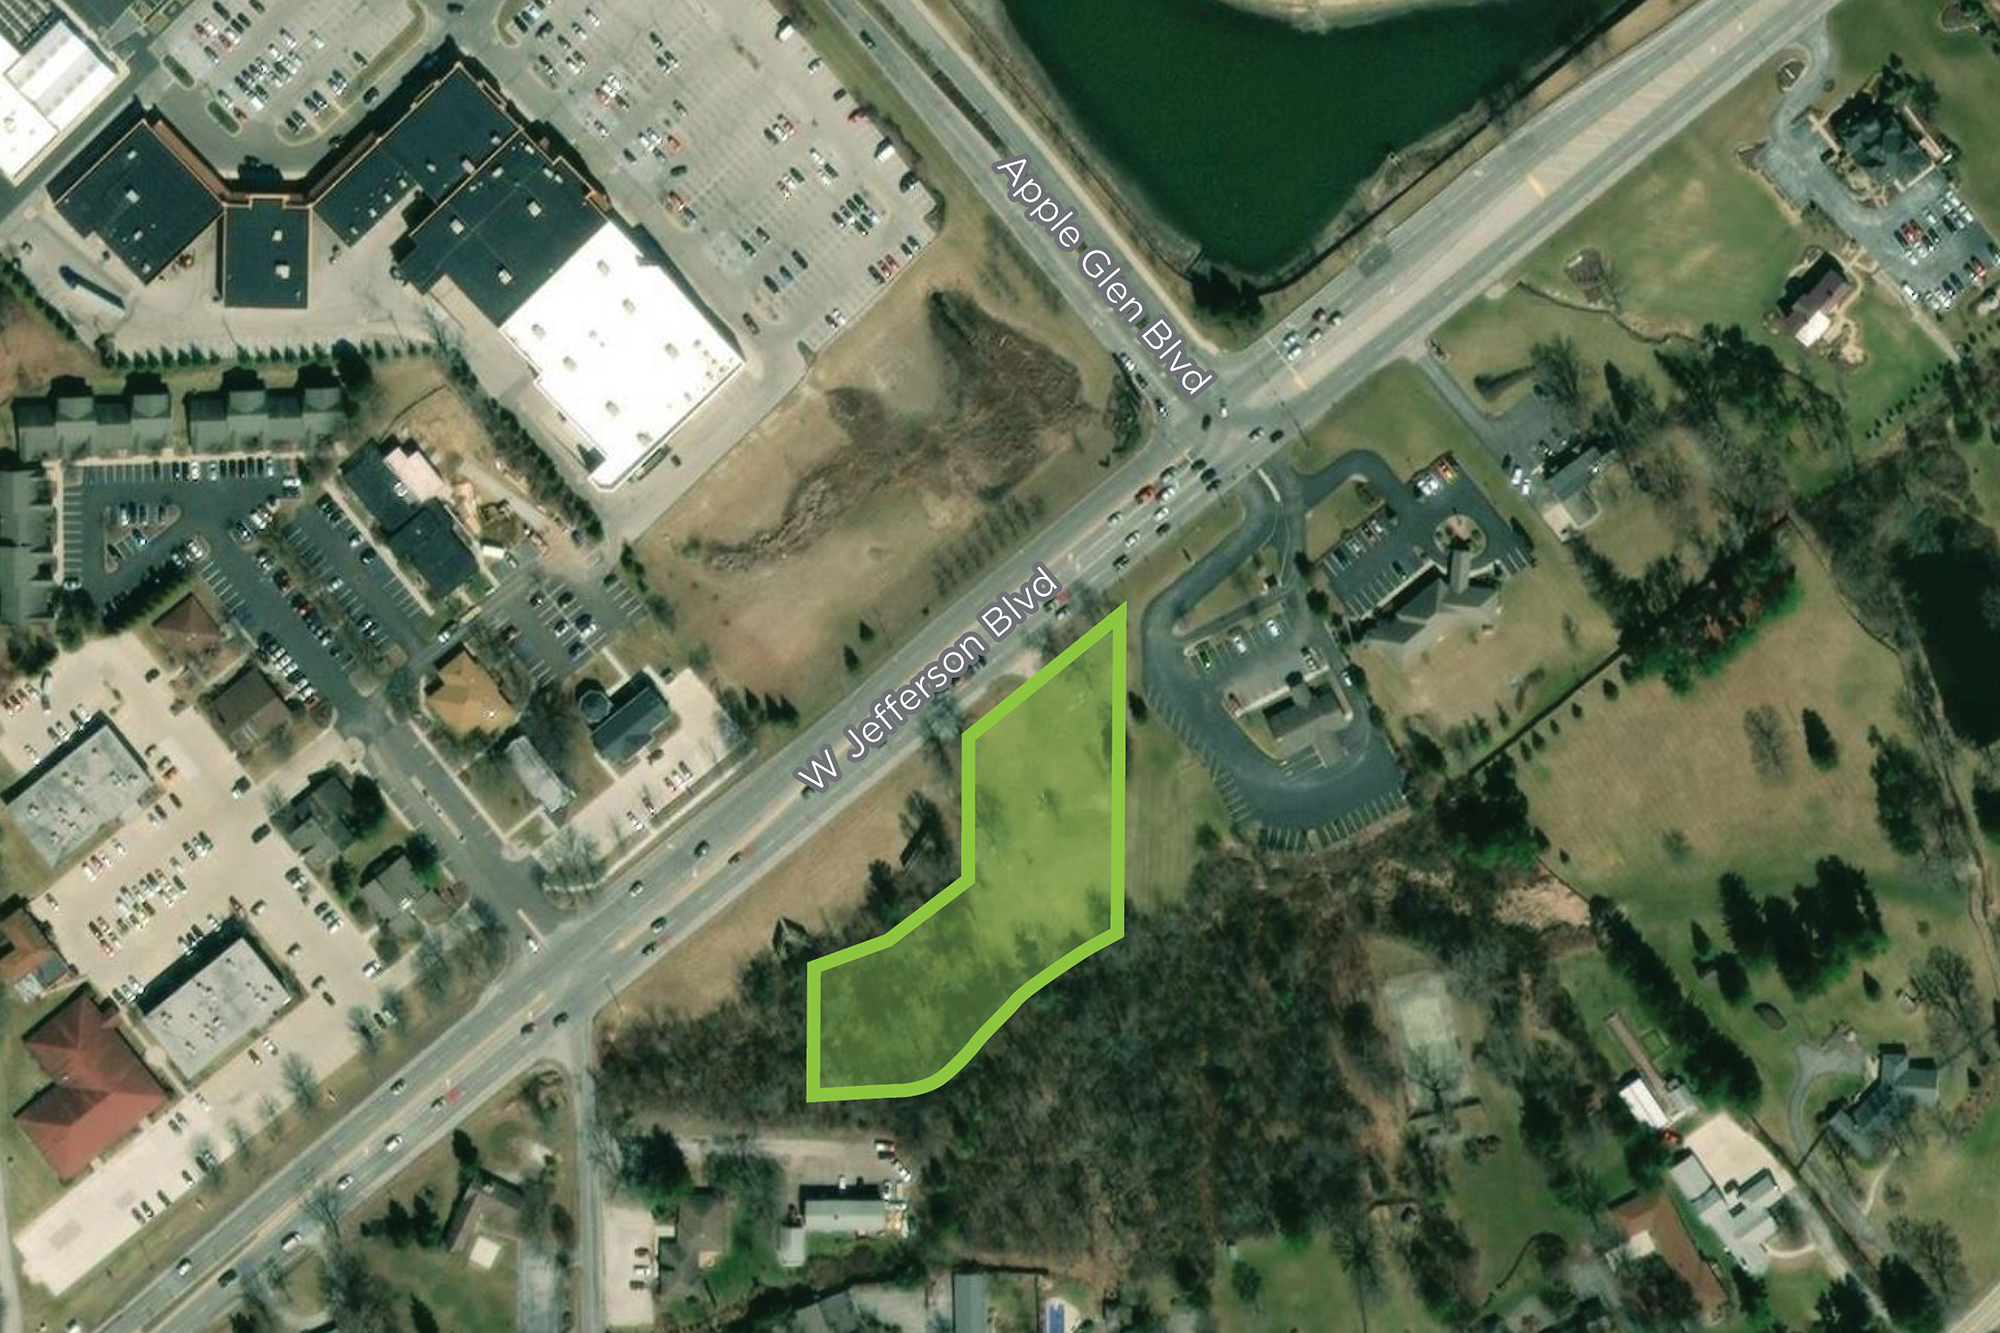 Site plan of 1.6 acres of land for sale on busy West Jefferson Boulevard and across from Jefferson Pointe and Apple Glen.